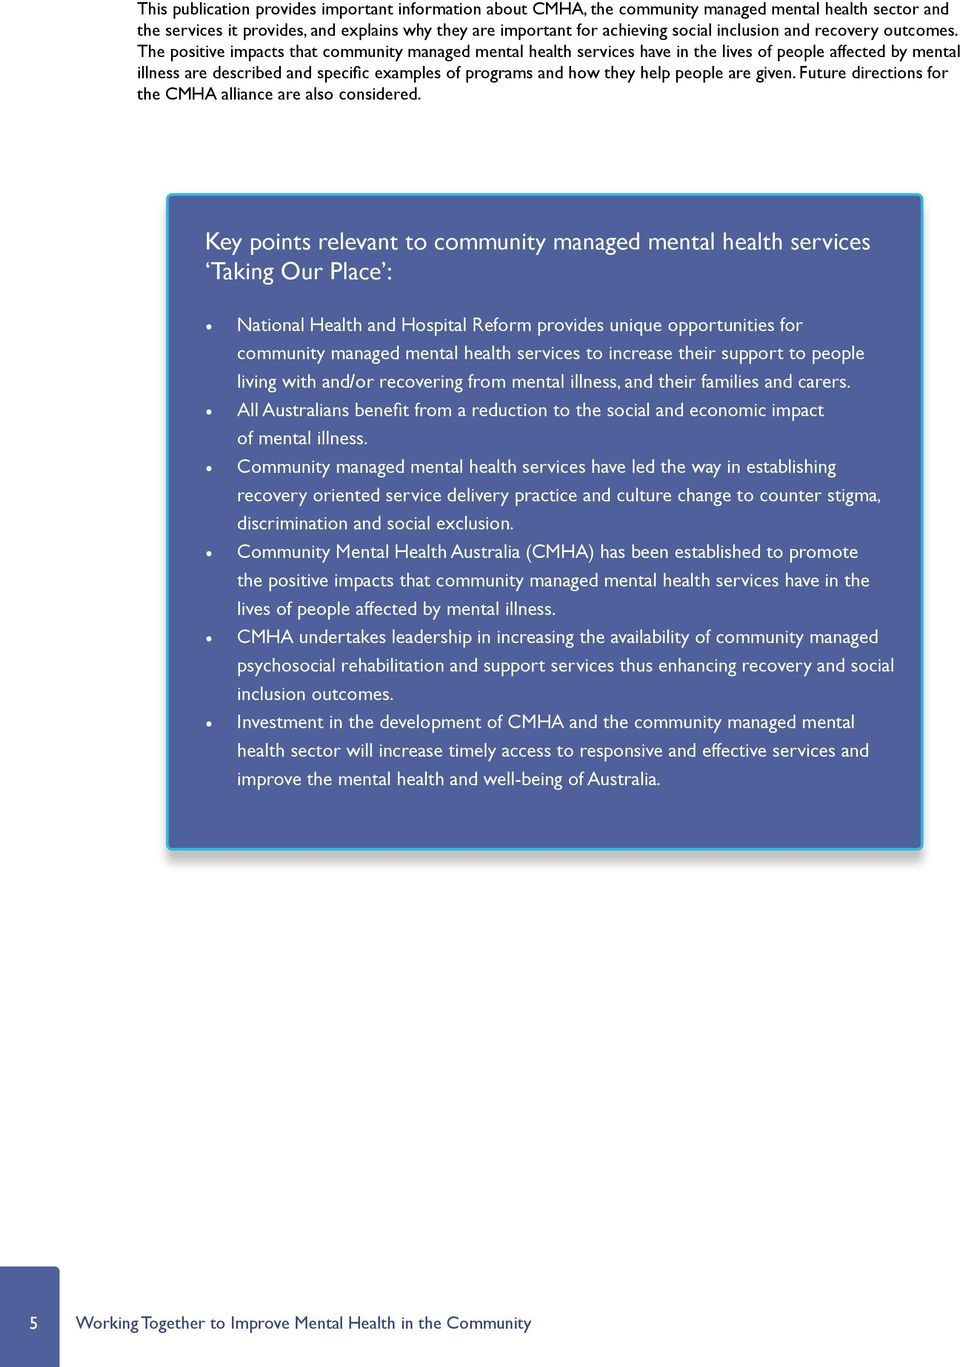 The positive impacts that community managed mental health services have in the lives of people affected by mental illness are described and specific examples of programs and how they help people are